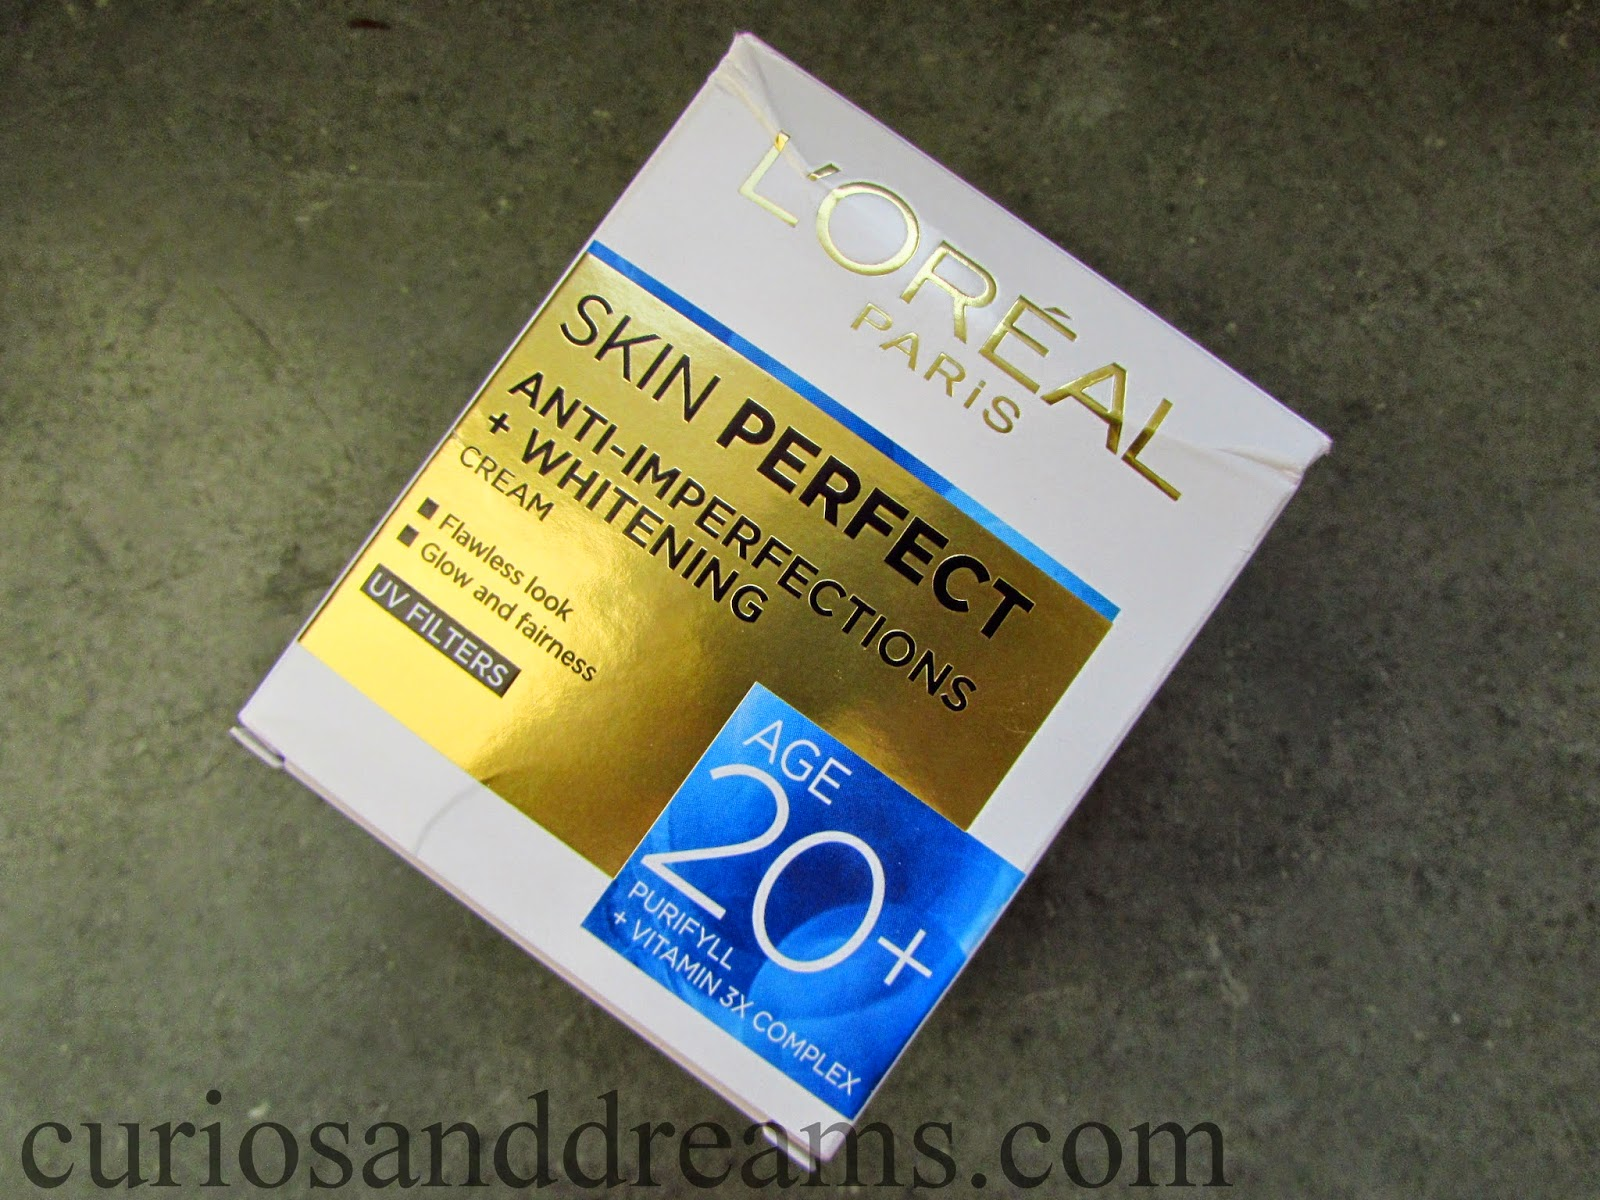 L'Oreal Skin Perfect 20+ Cream review, L'Oreal Skin Perfect review,